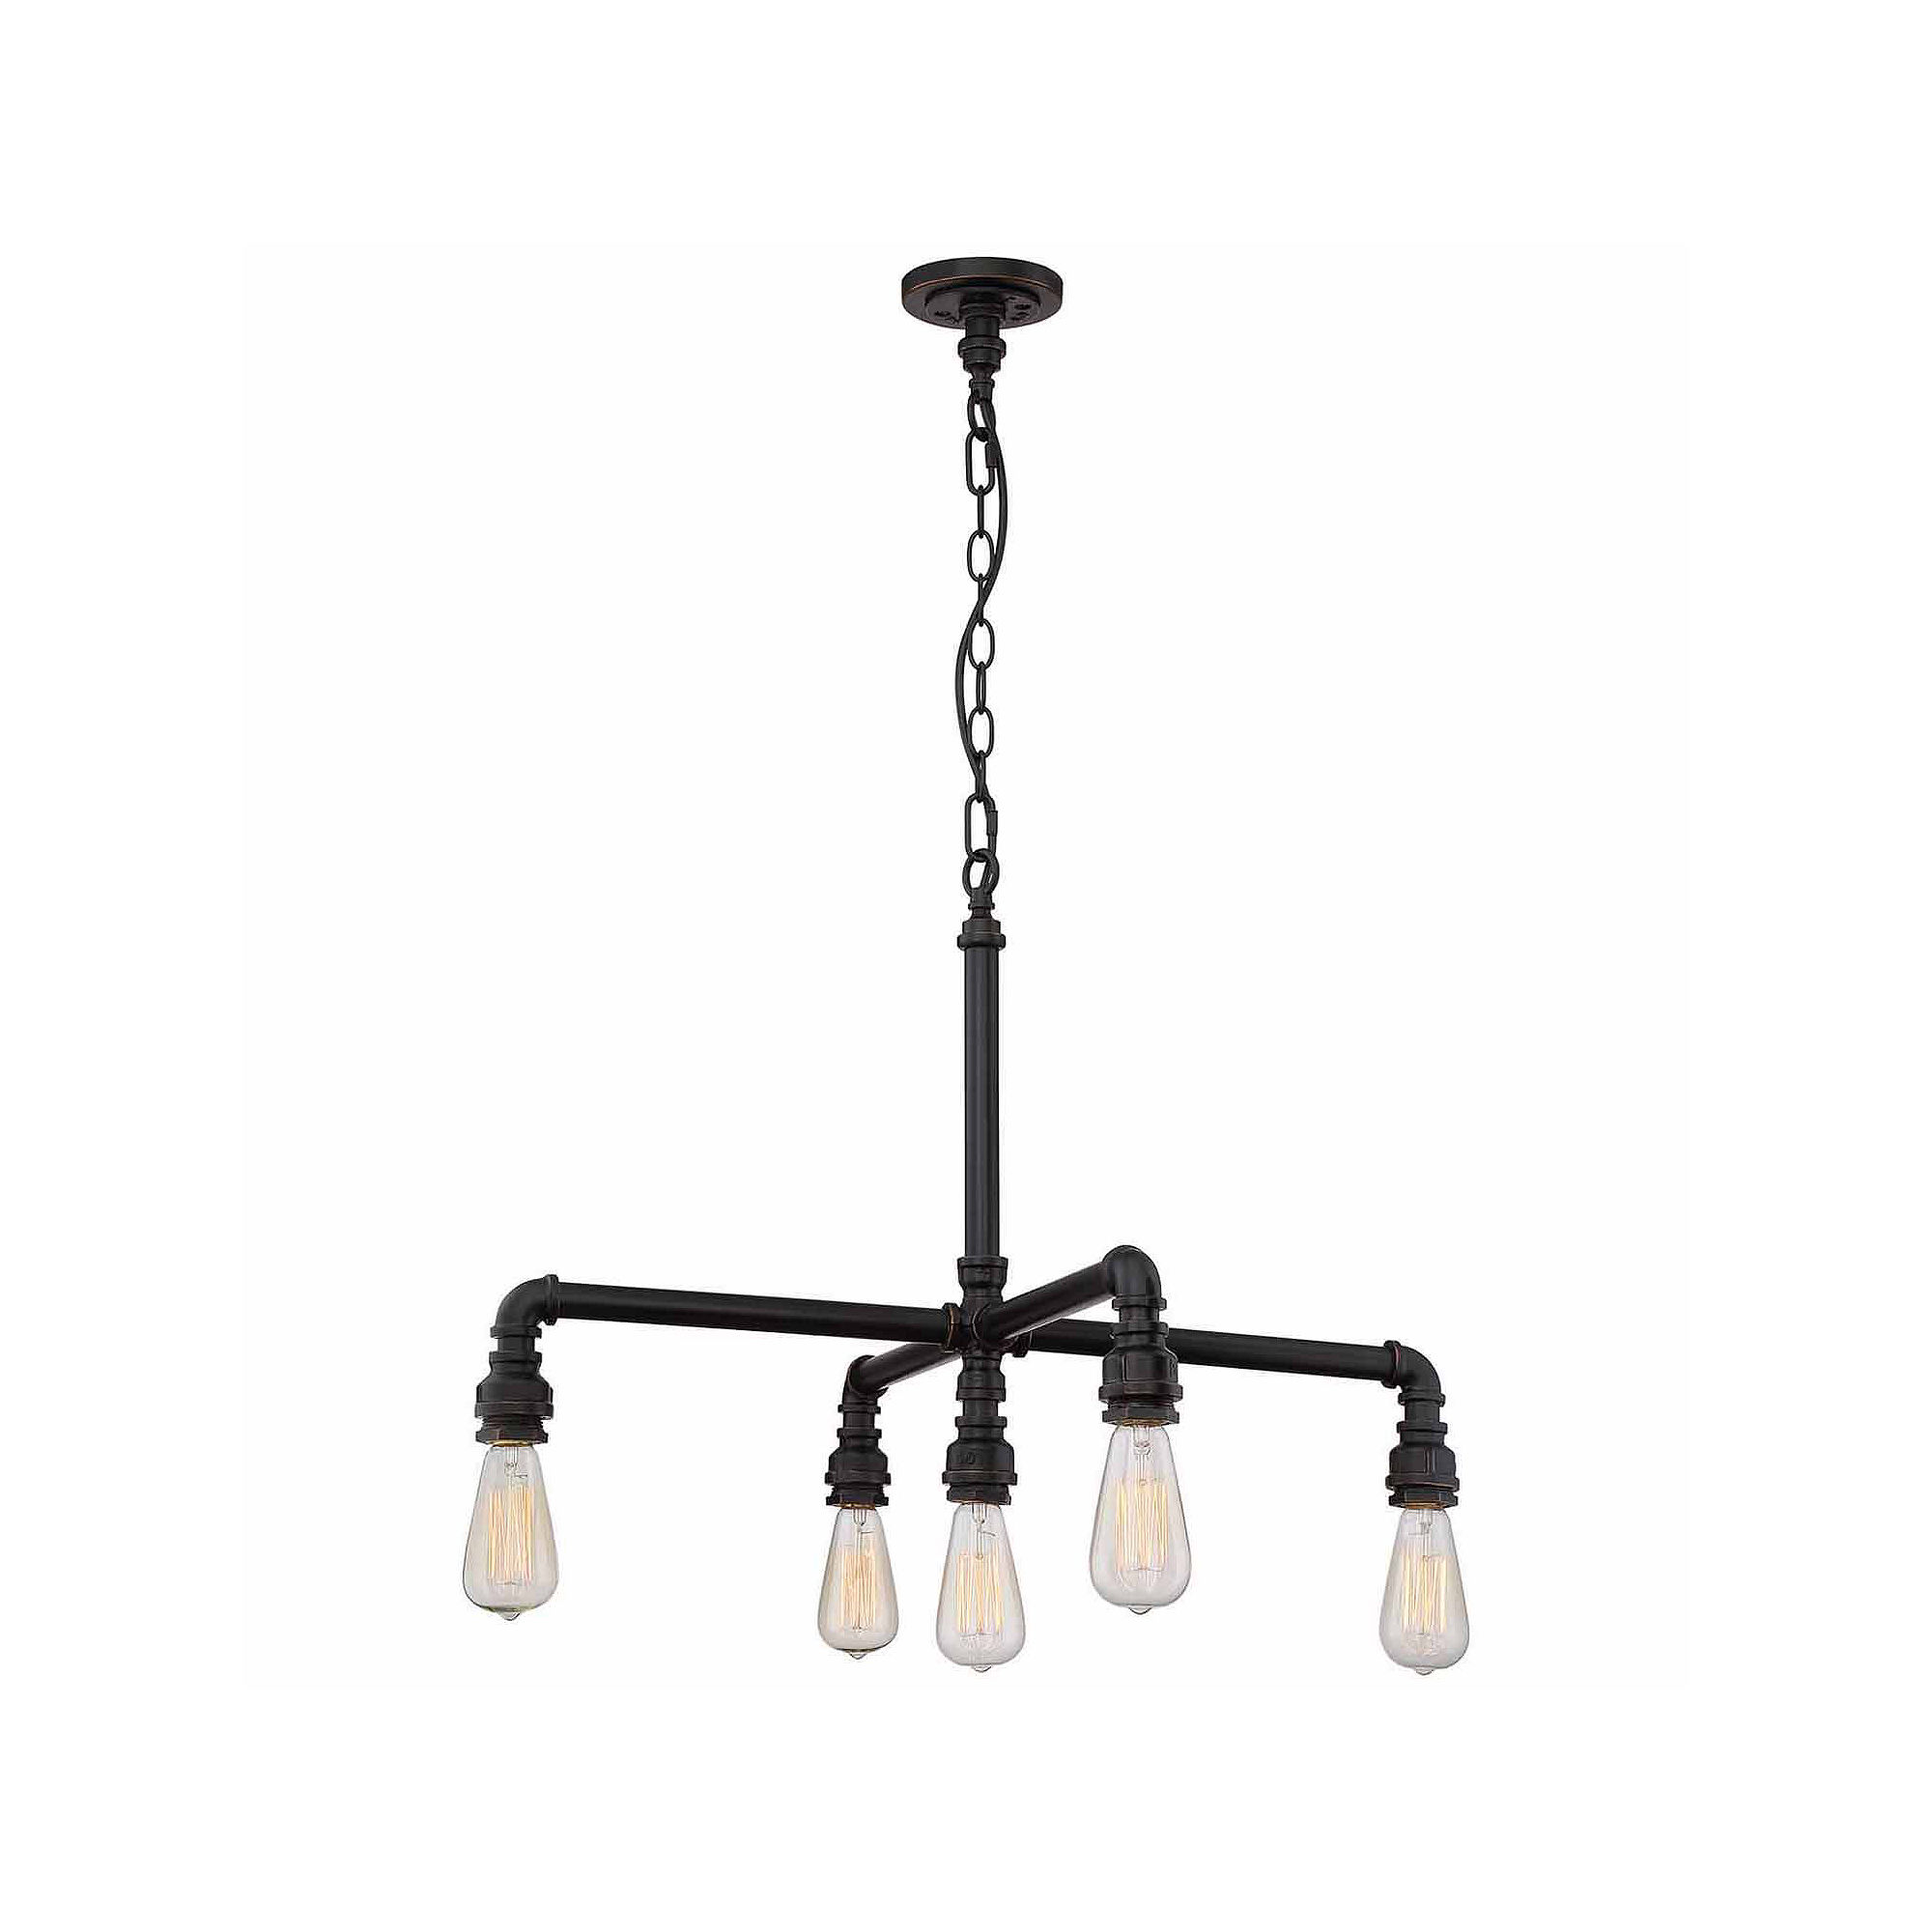 Filament Design 5-Light Industrial Bronze Chandelier